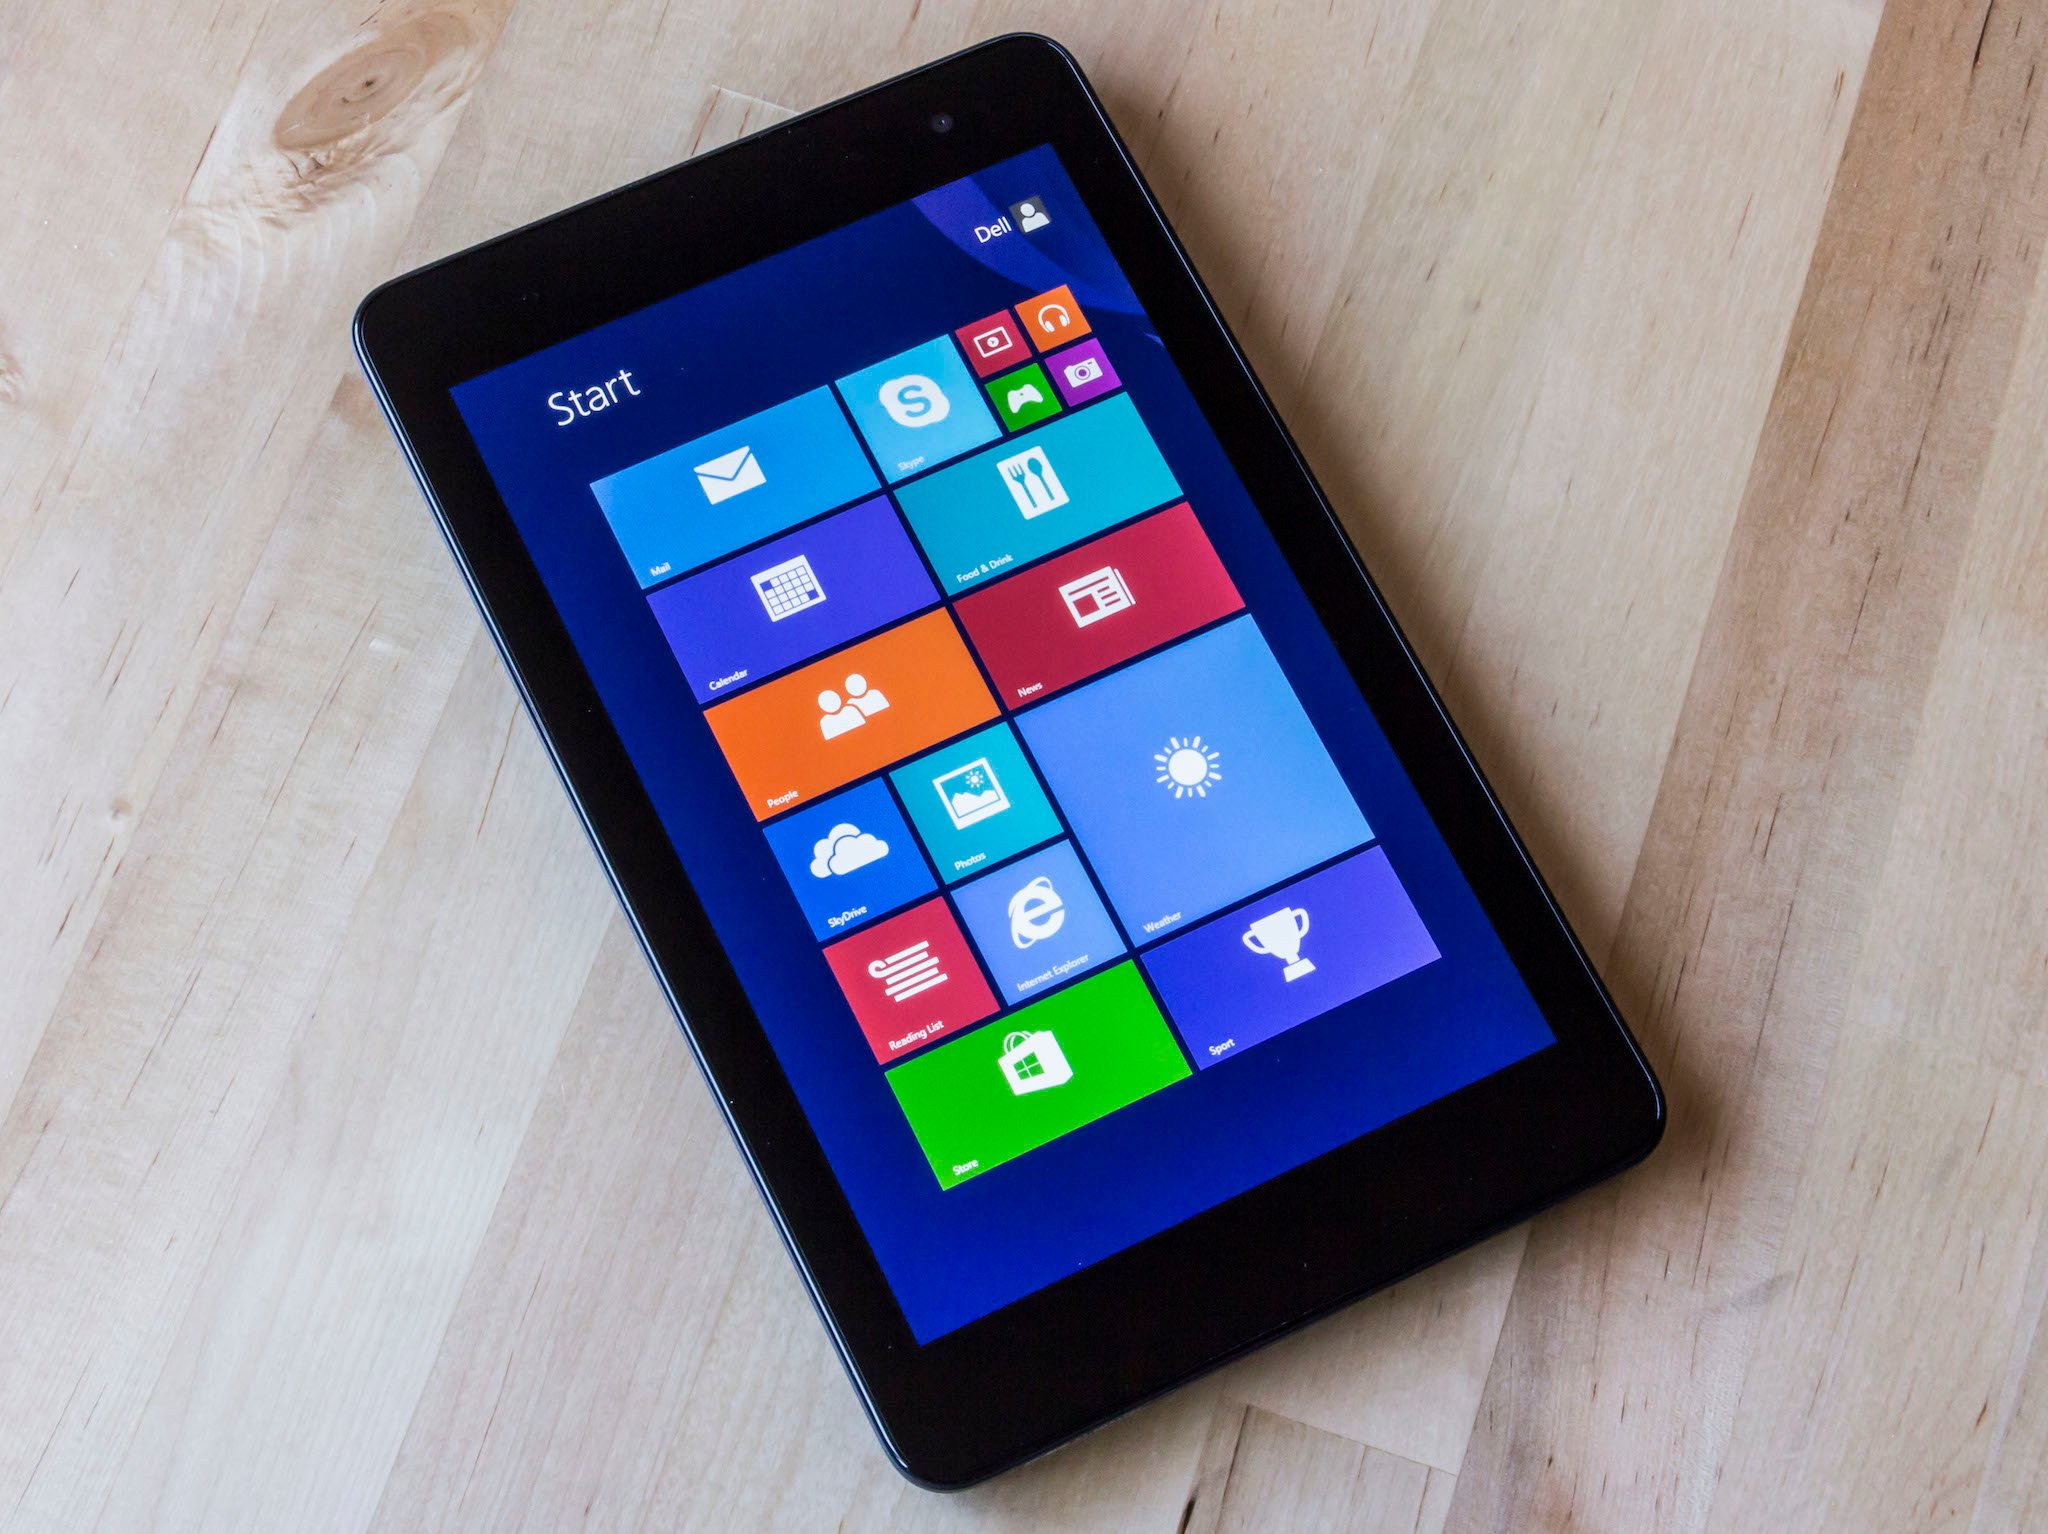 Dell Venue 8 Pro Review: Small Size, Full Windows